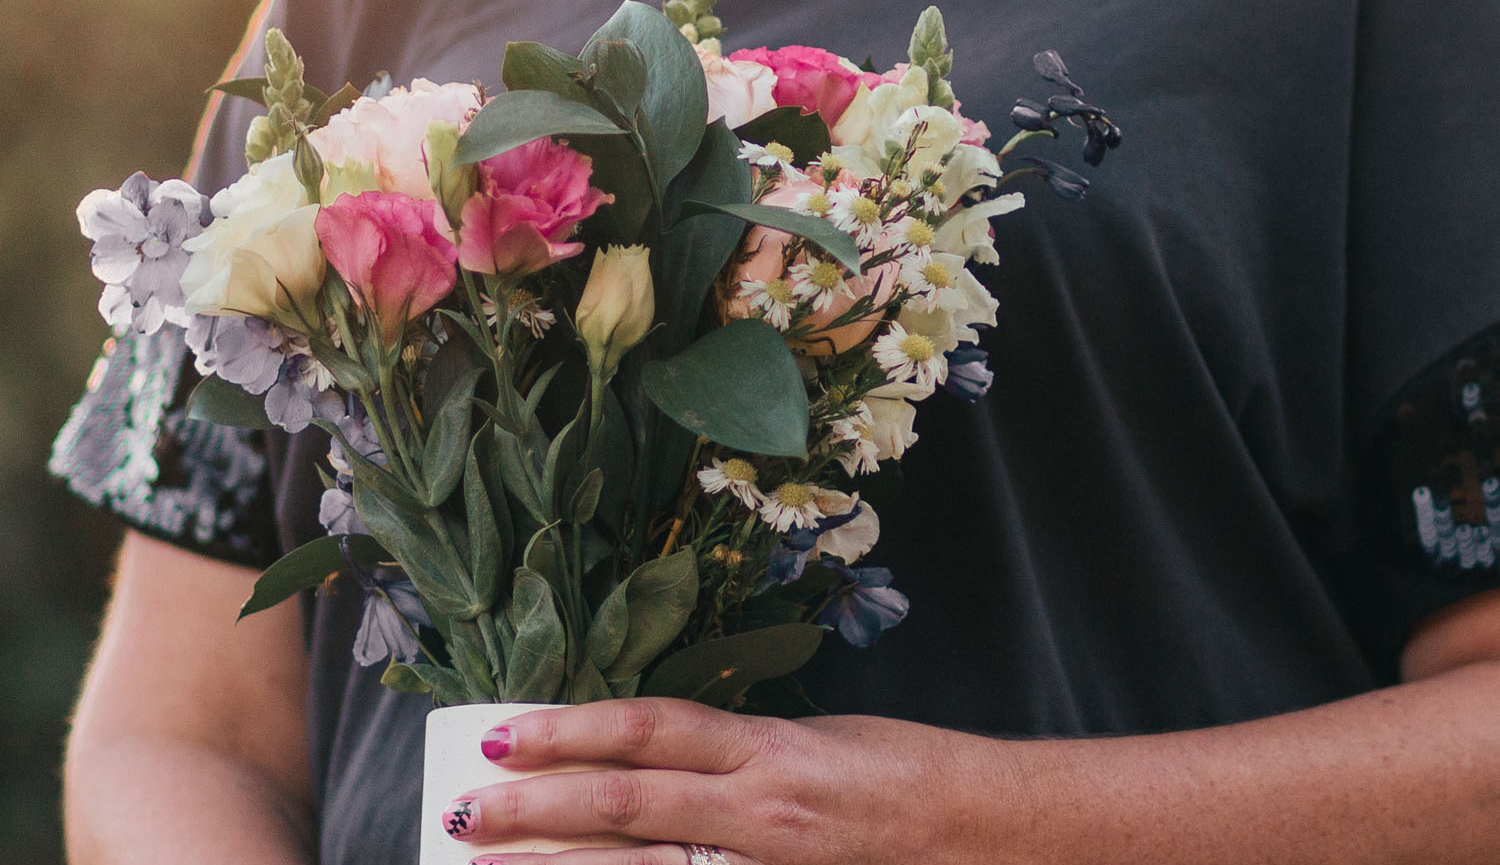 Hands holding a vase with a floral bouquet